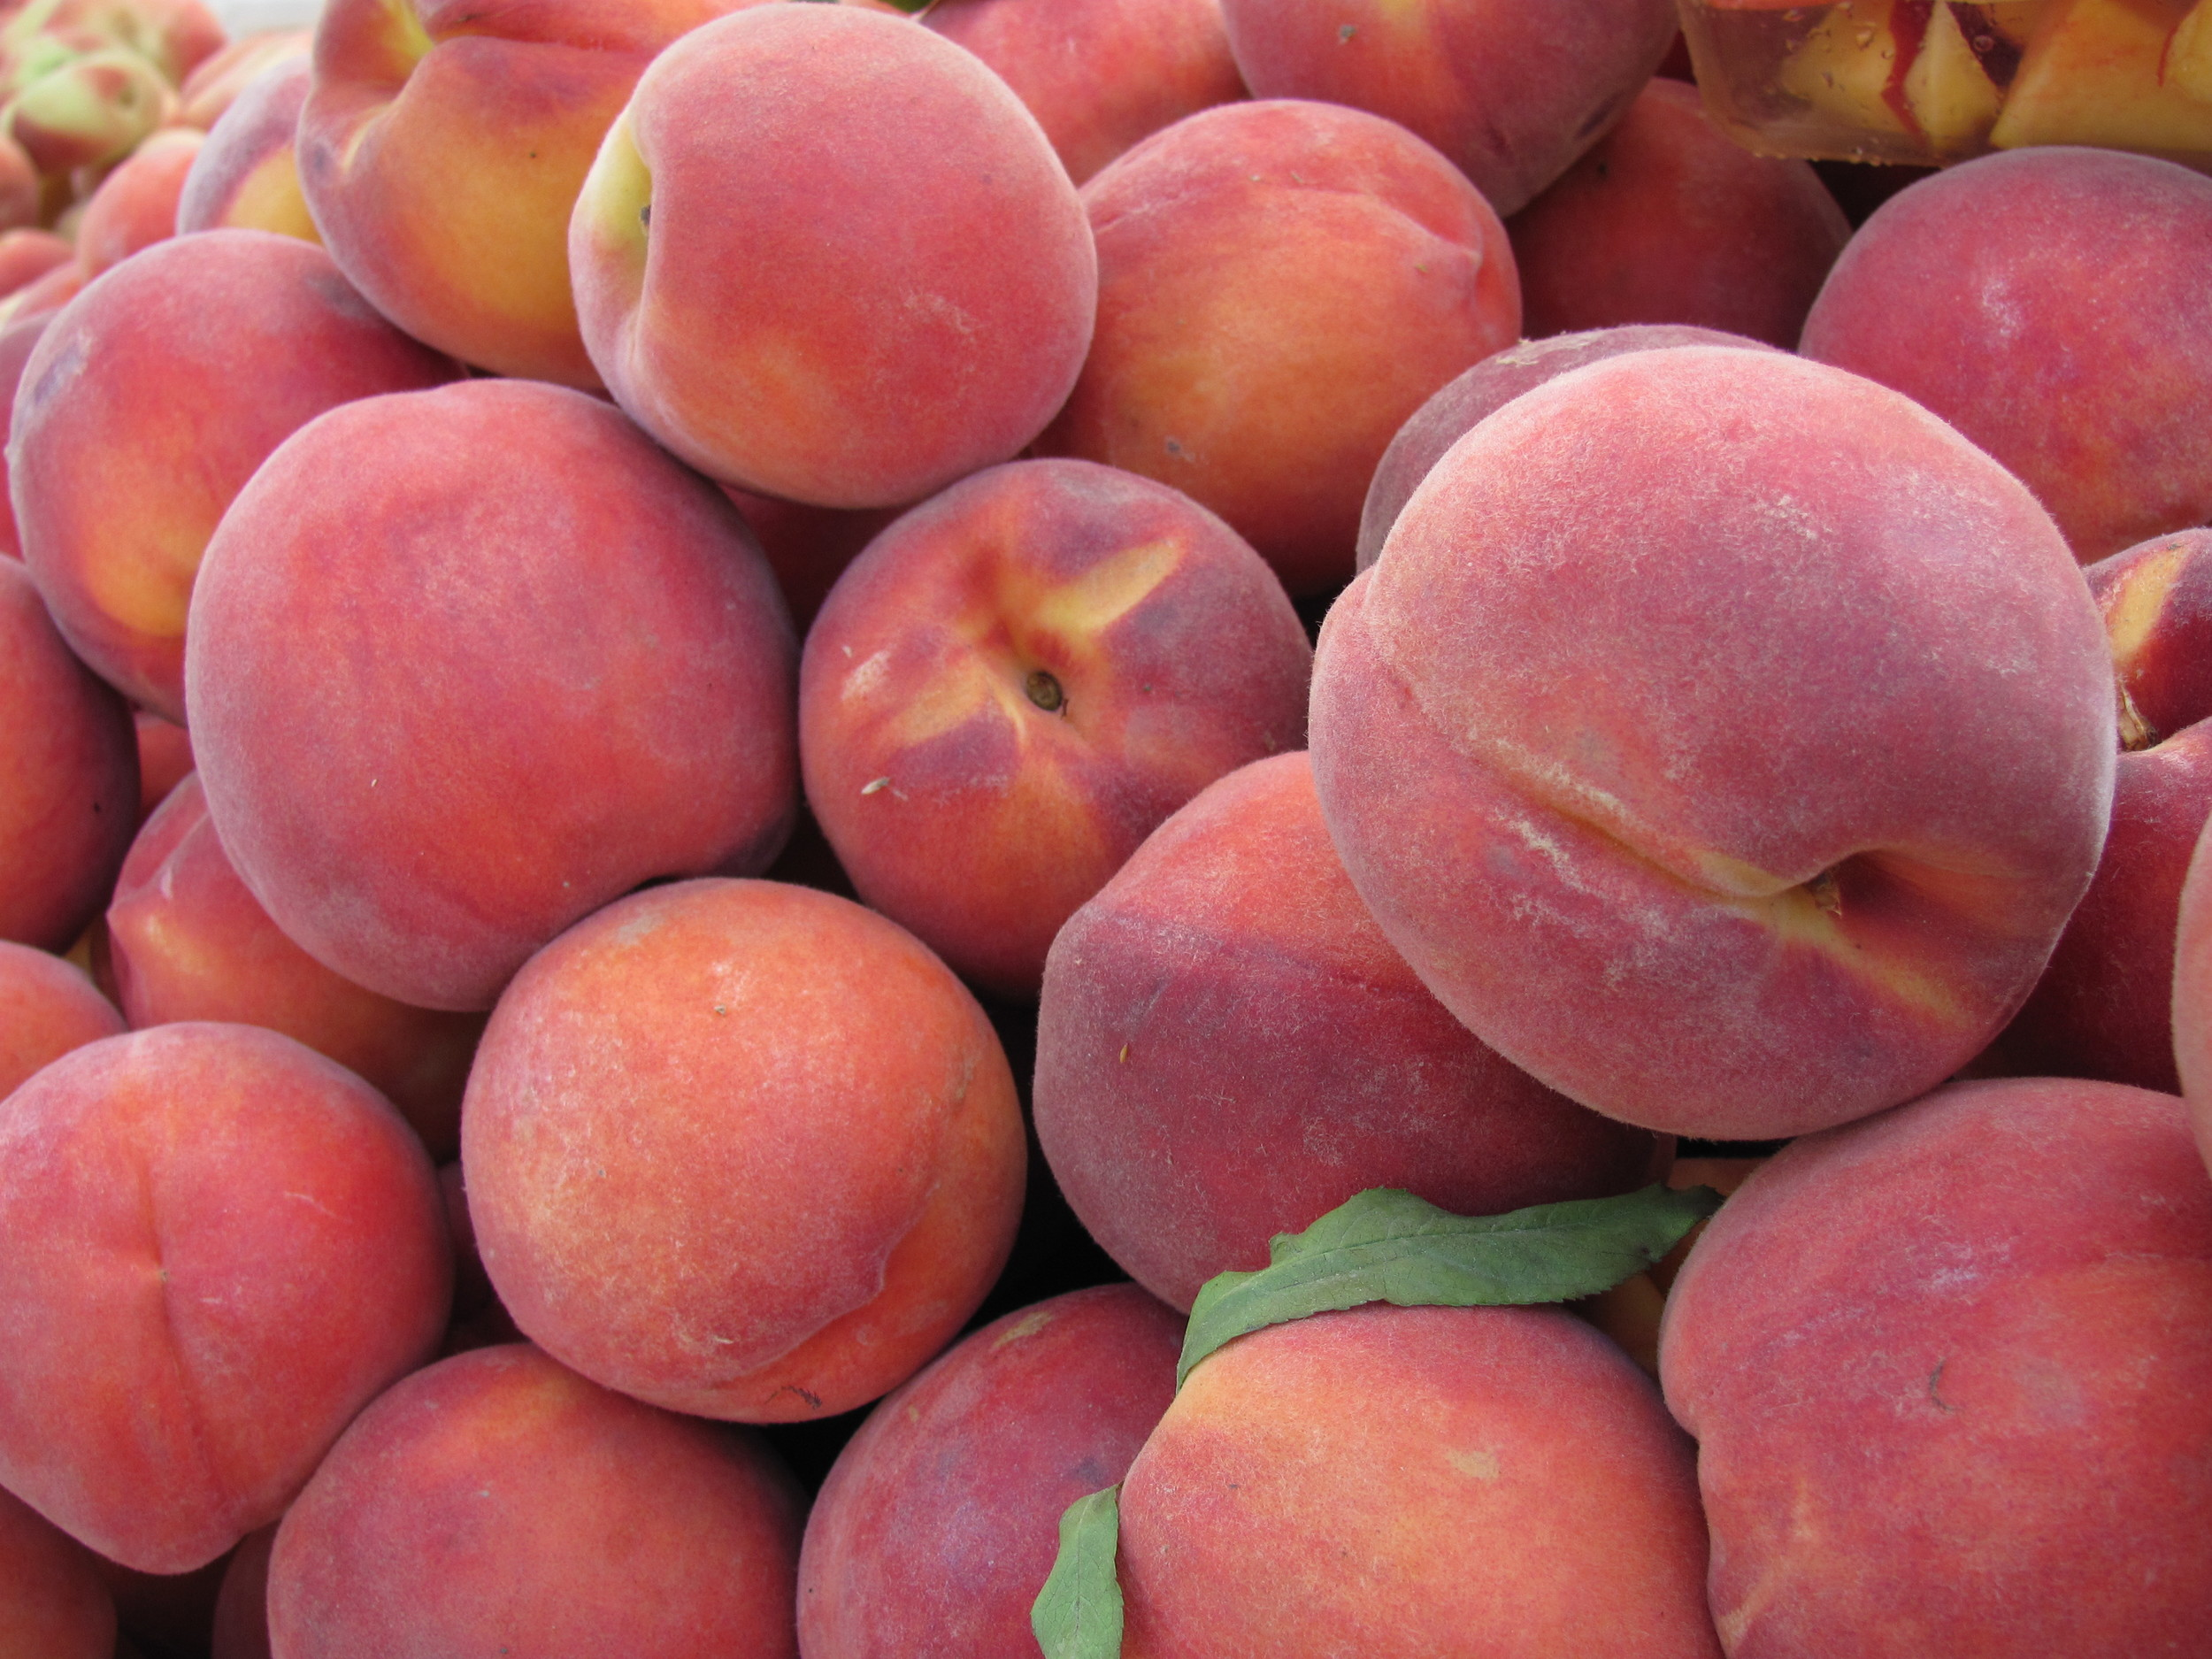 Saratoga Farmers Market peaches